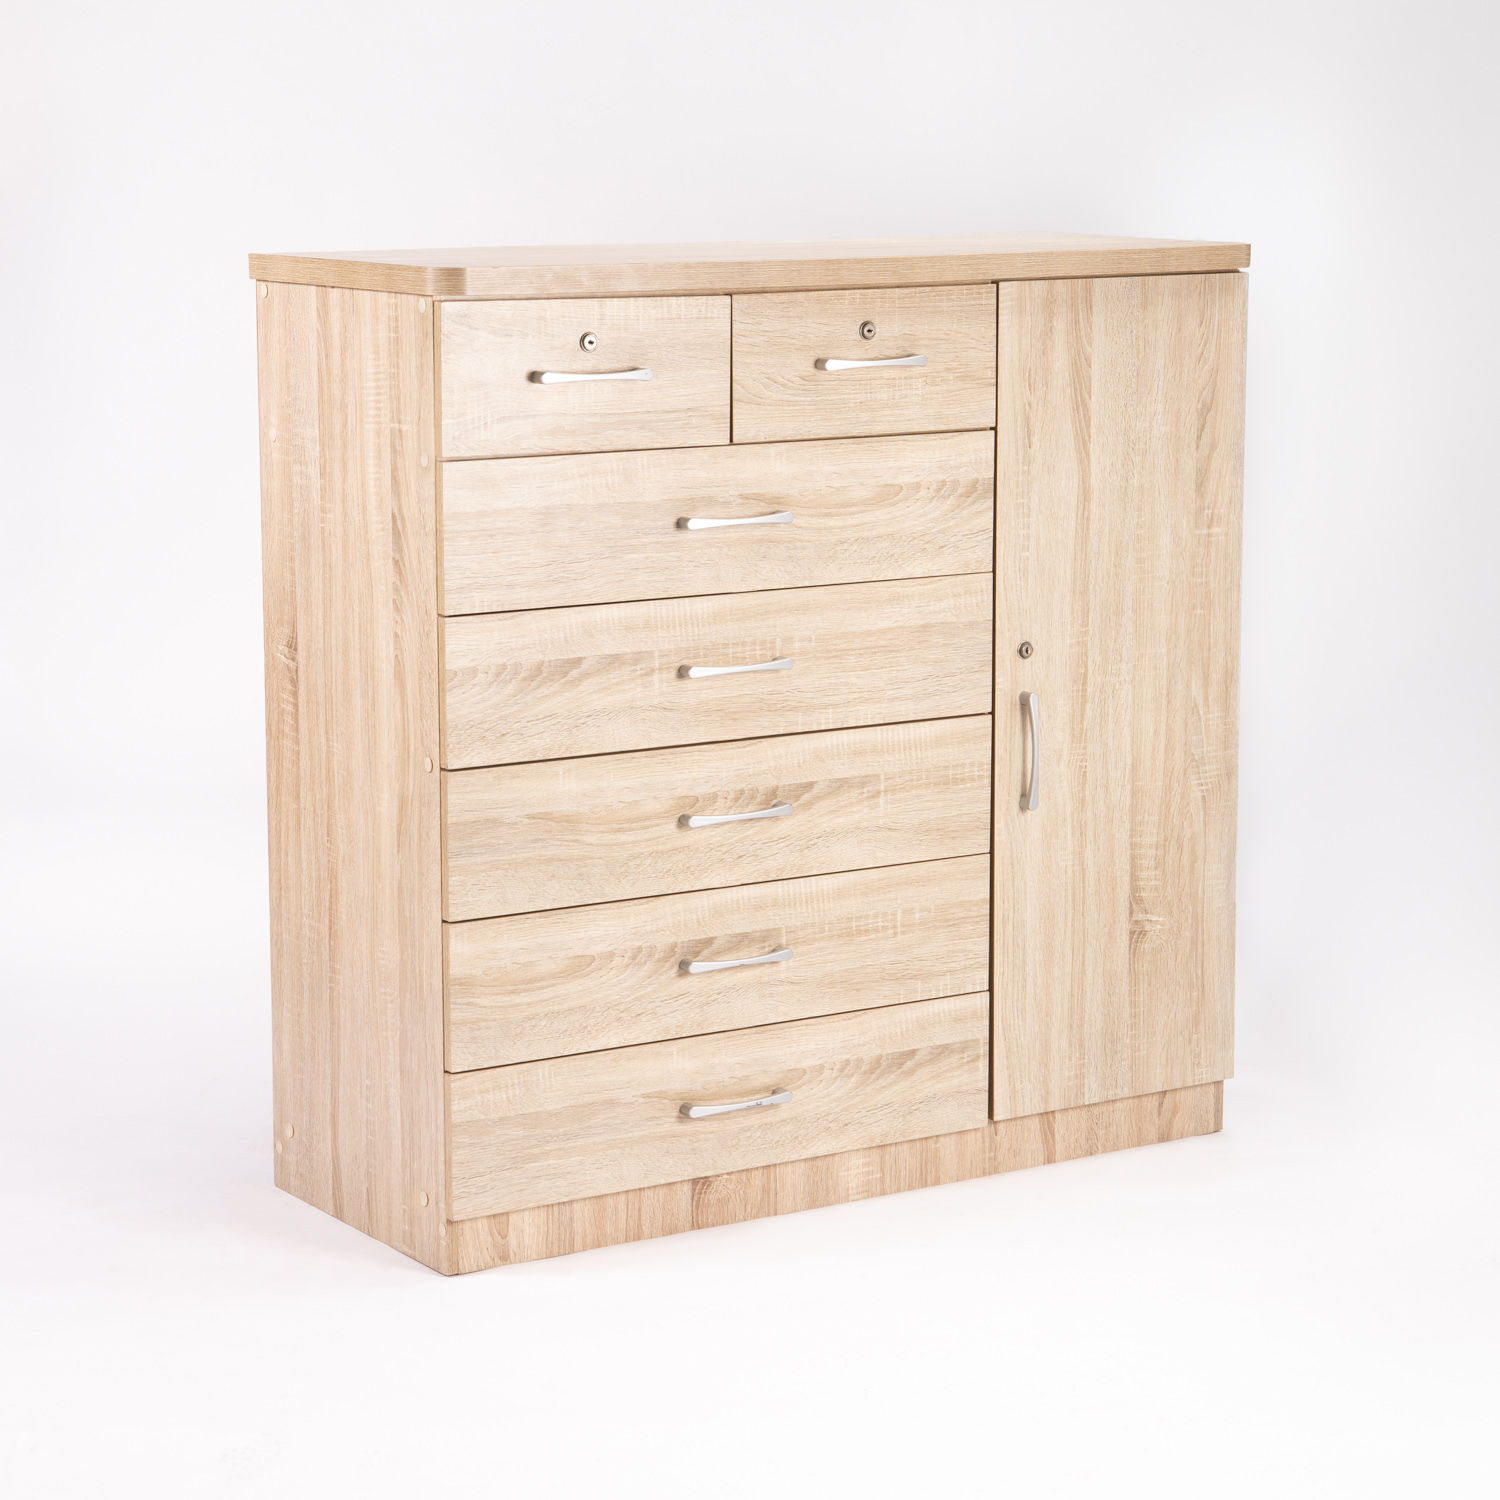 TITAN 7 DRAWER 1 DOOR CHEST